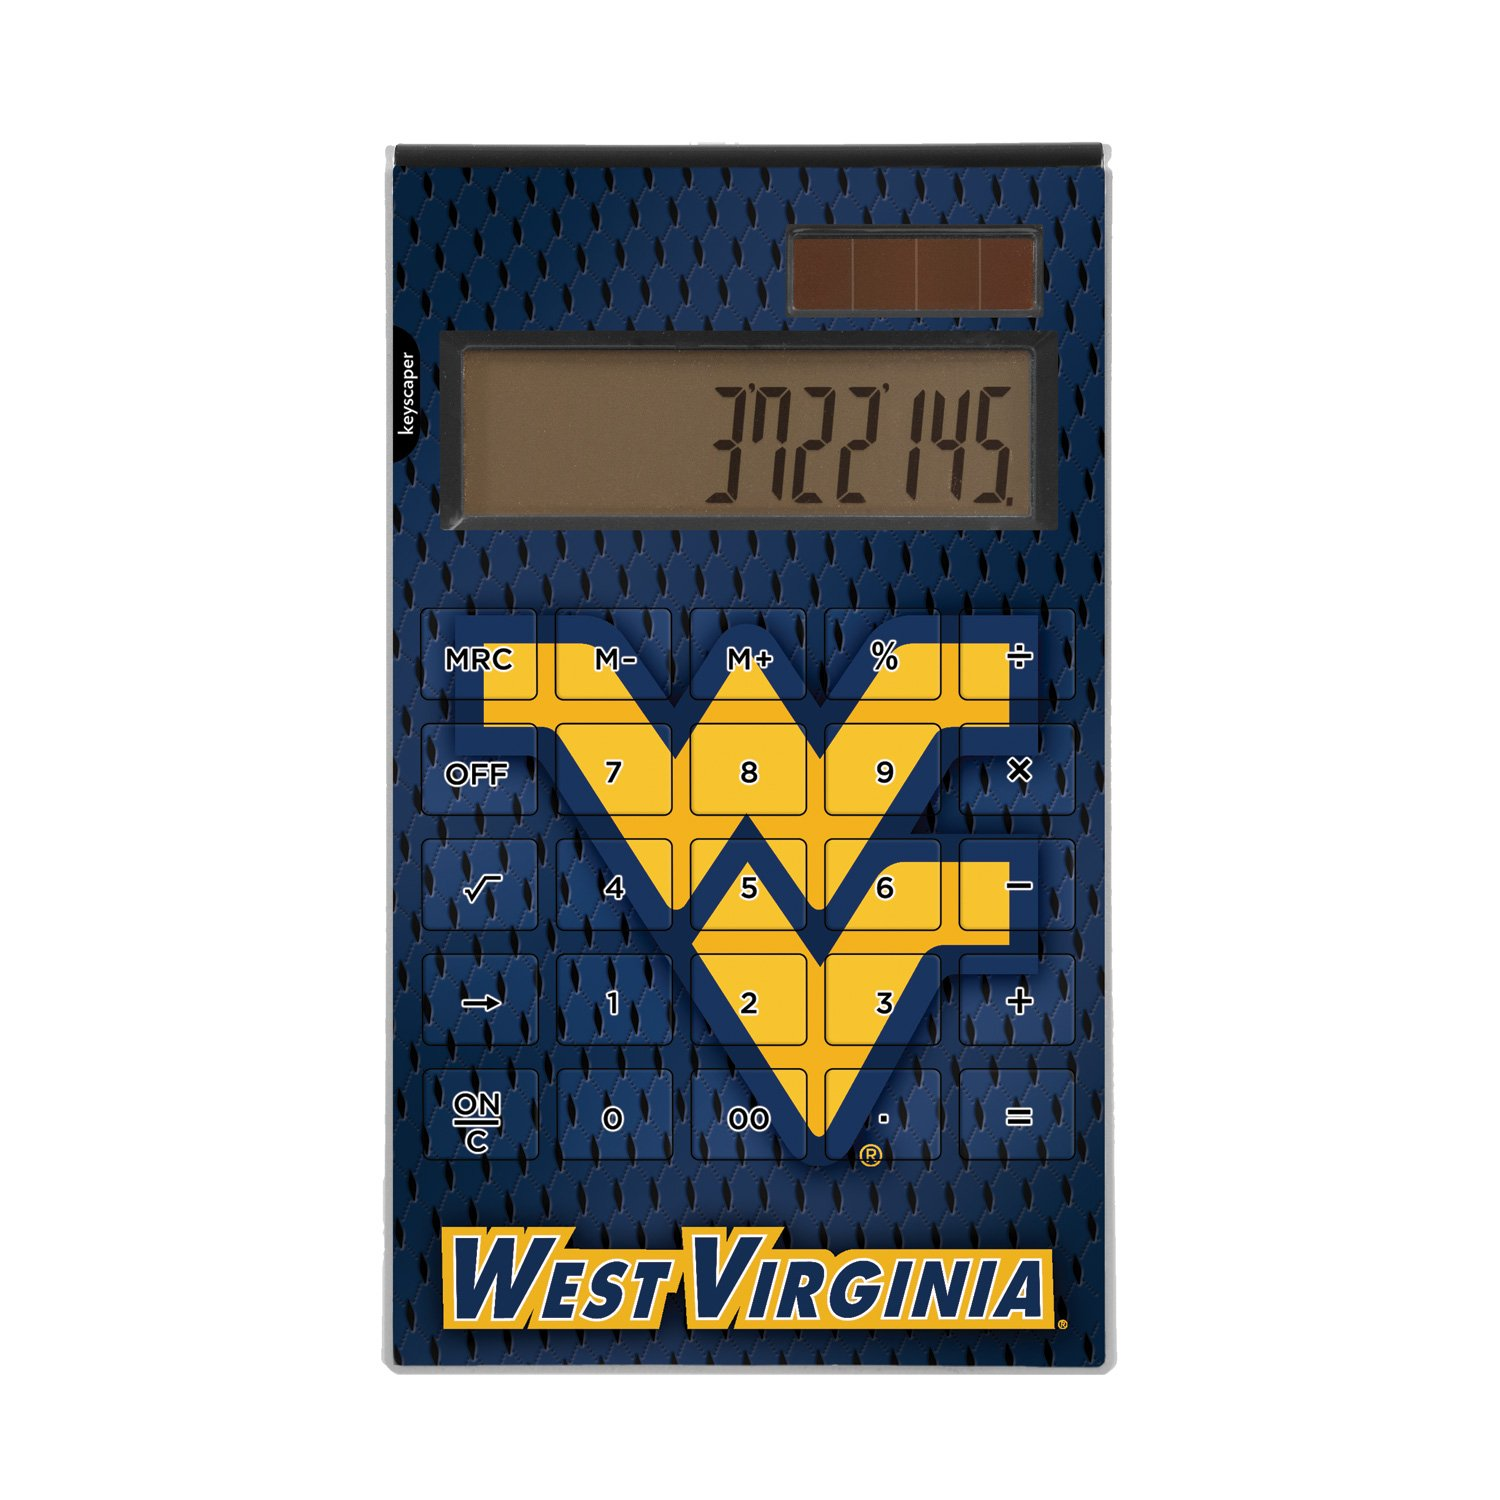 West Virginia Mountaineers Desktop Calculator officially licensed by West Virginia University Full Size Large Button Solar by keyscaper® by Keyscaper